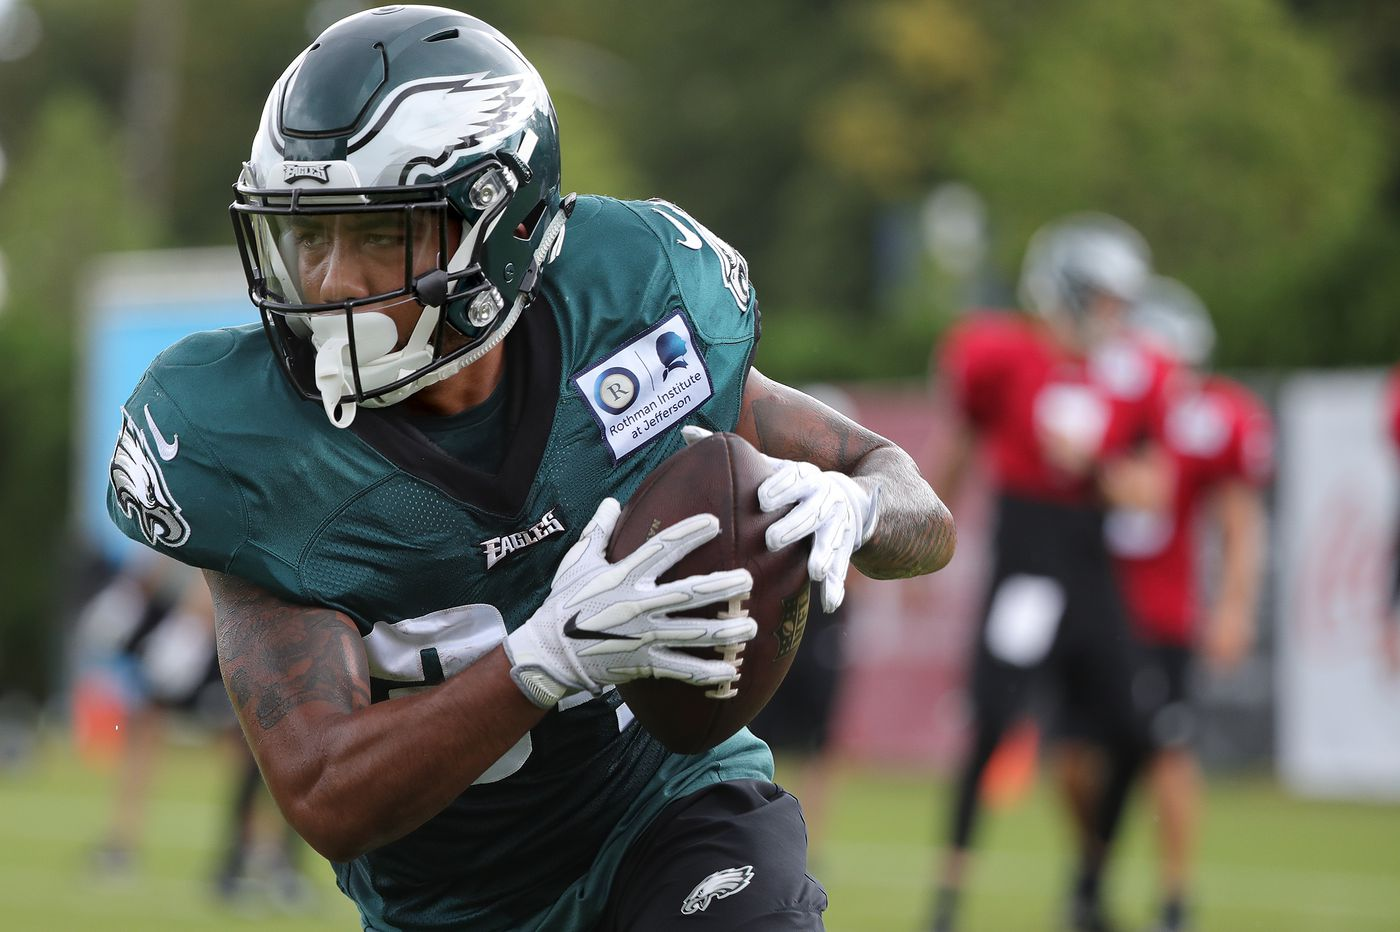 Clyde Simmons and Seth Joyner to join Eagles Hall of Fame; Donnel Pumphrey misses preseason opener